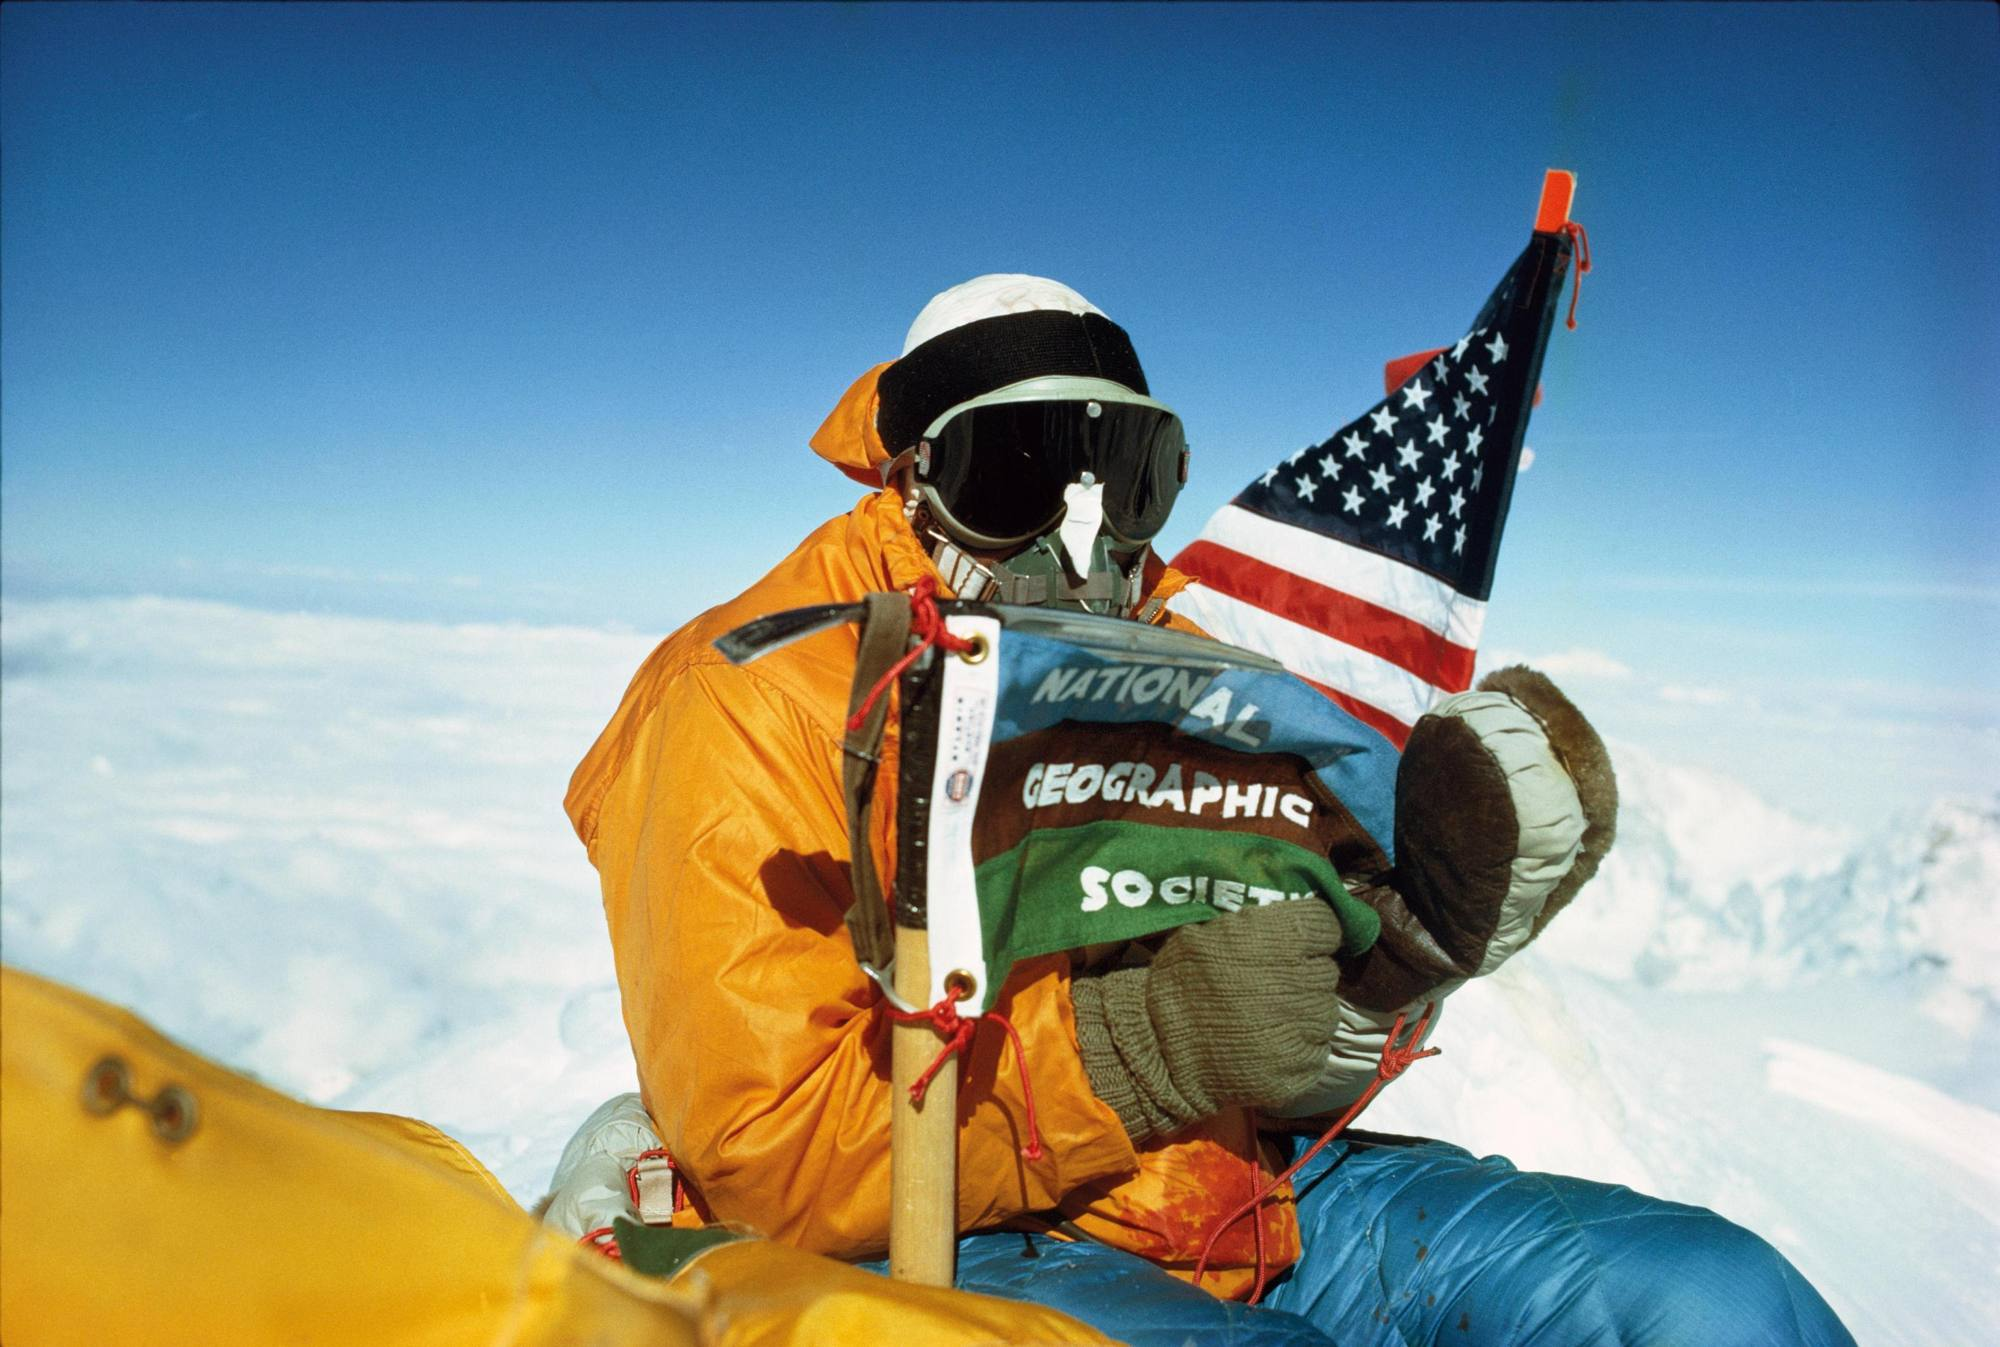 Barry Bishop sull'Everest in Nepal nel 1963